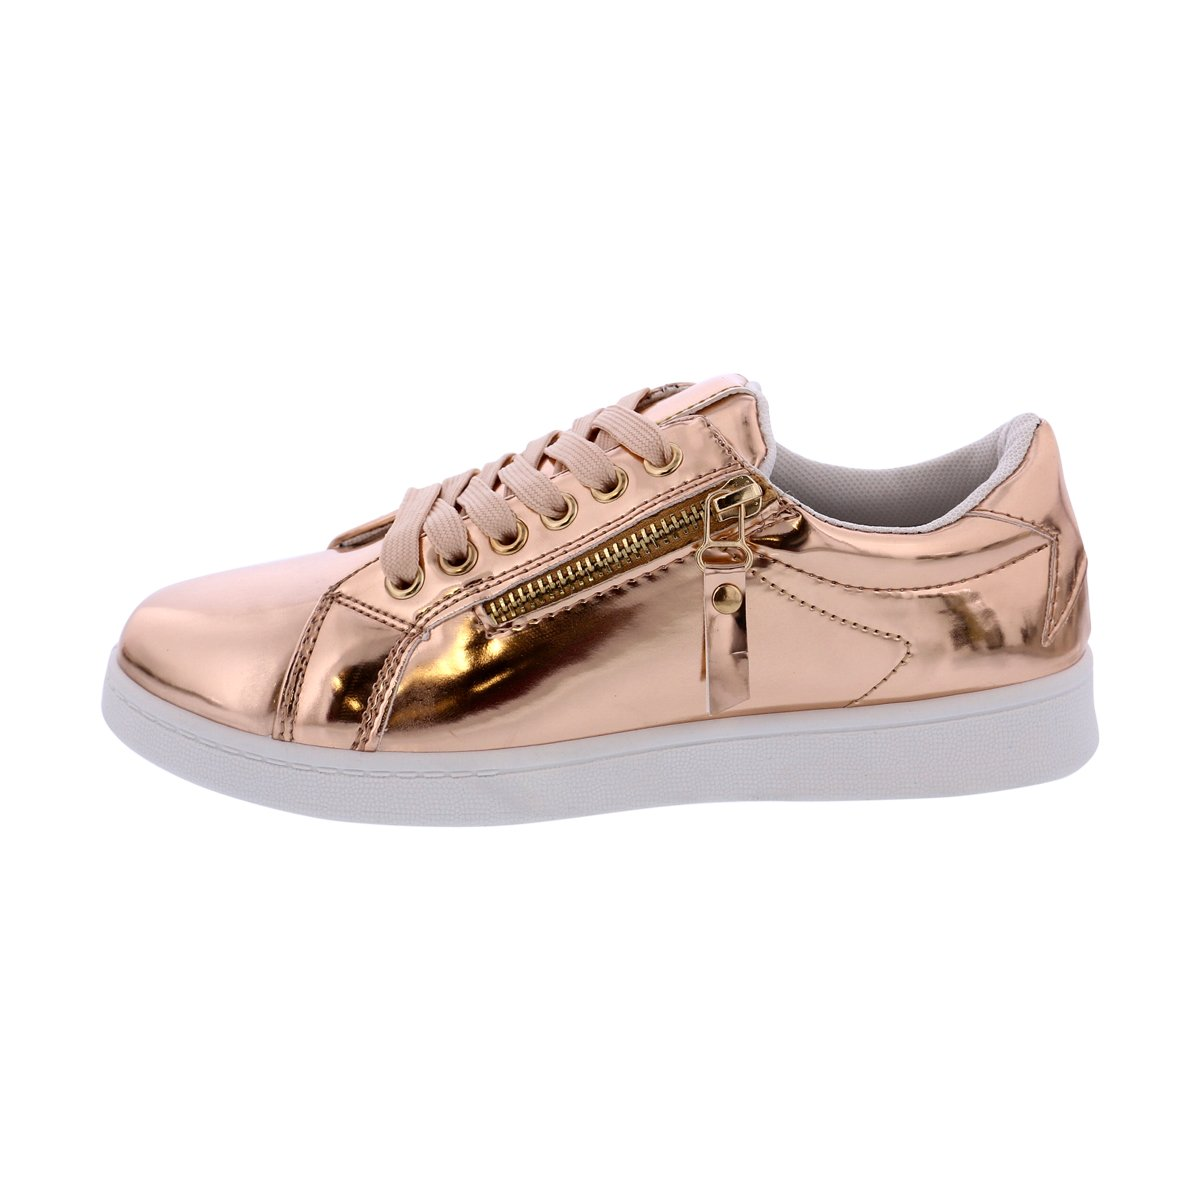 3c37ece95b96a Forever Womens Metallic Sneaker - Rose Gold